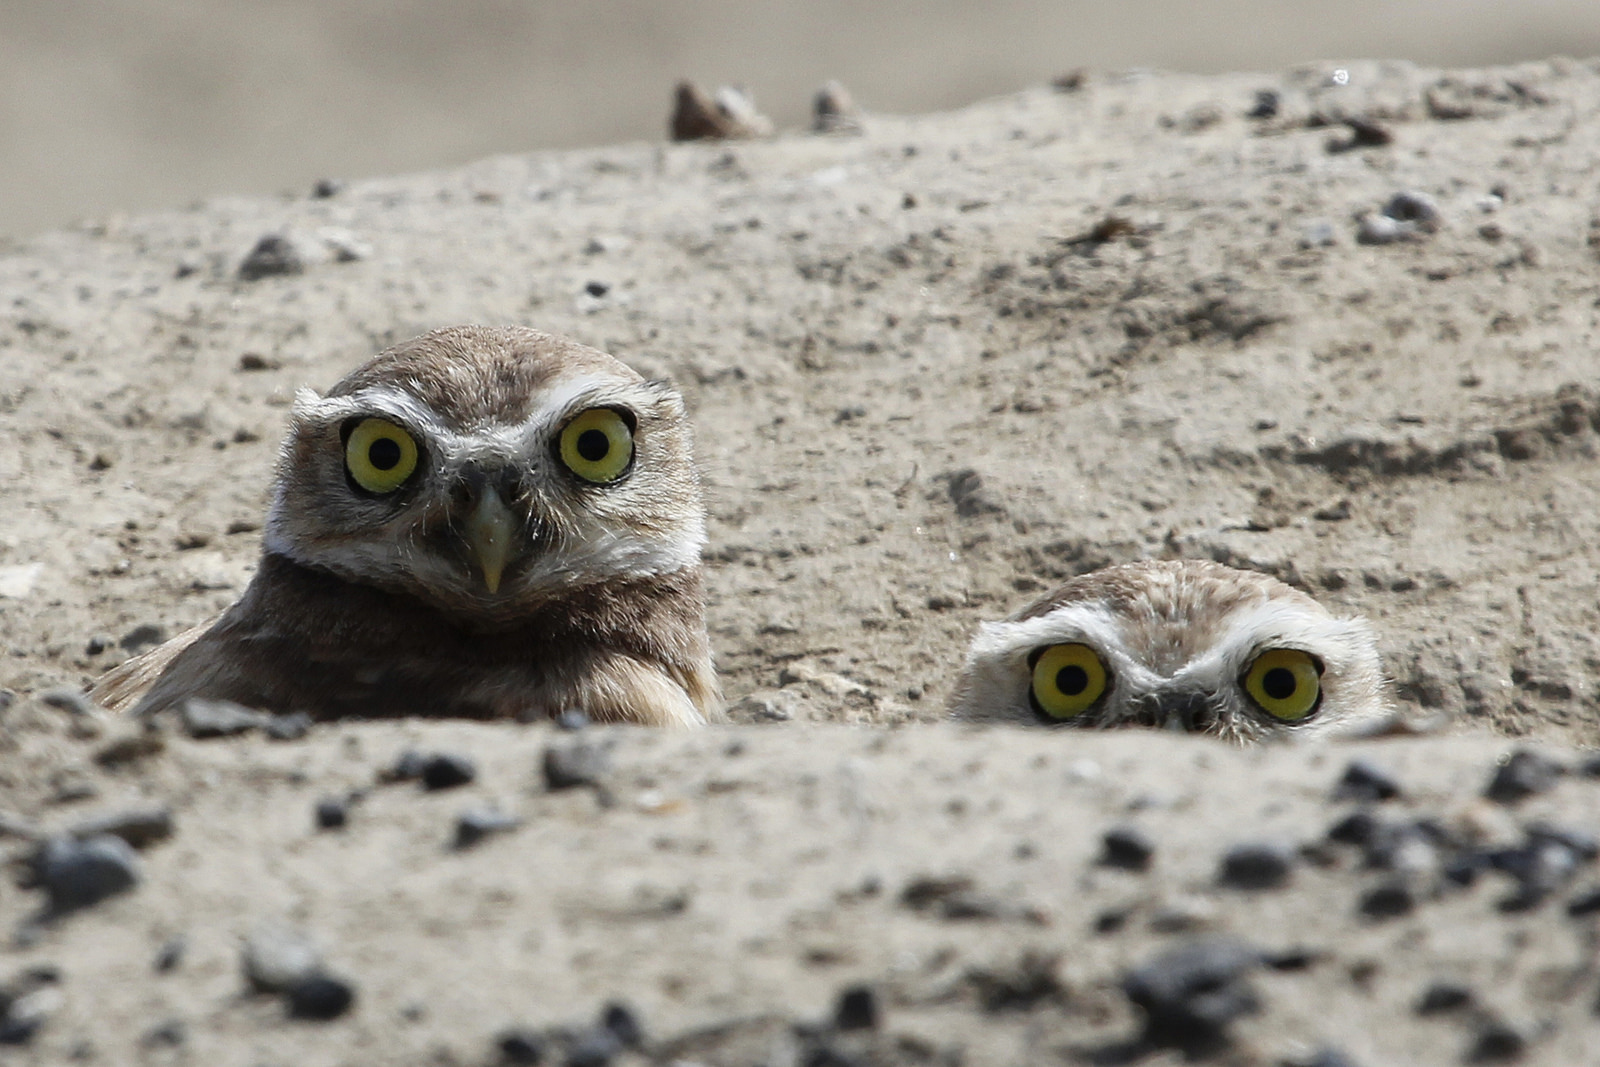 Owls by Larry Baxter